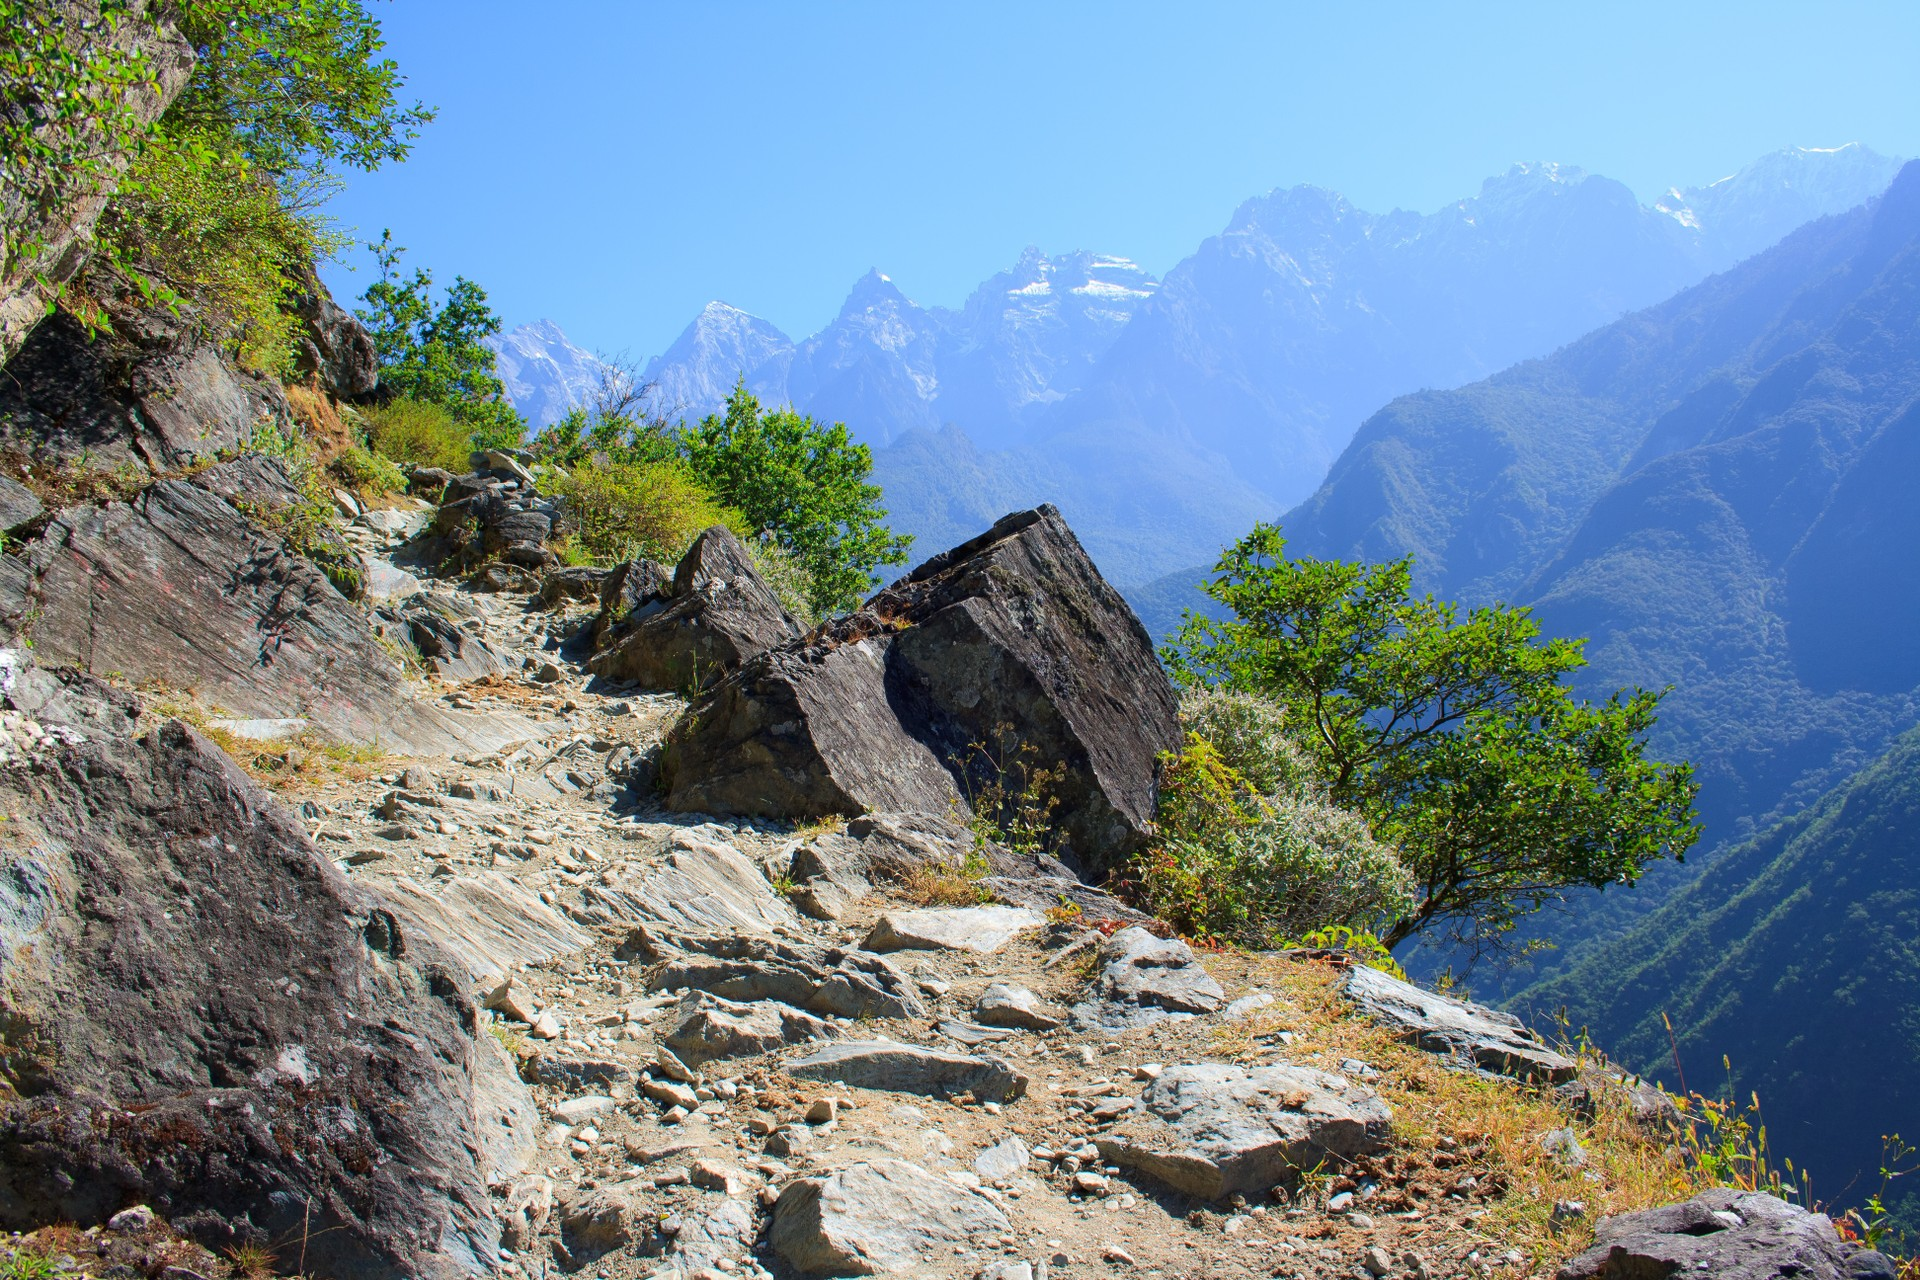 View from Tiger Leaping Gorge hiking trail